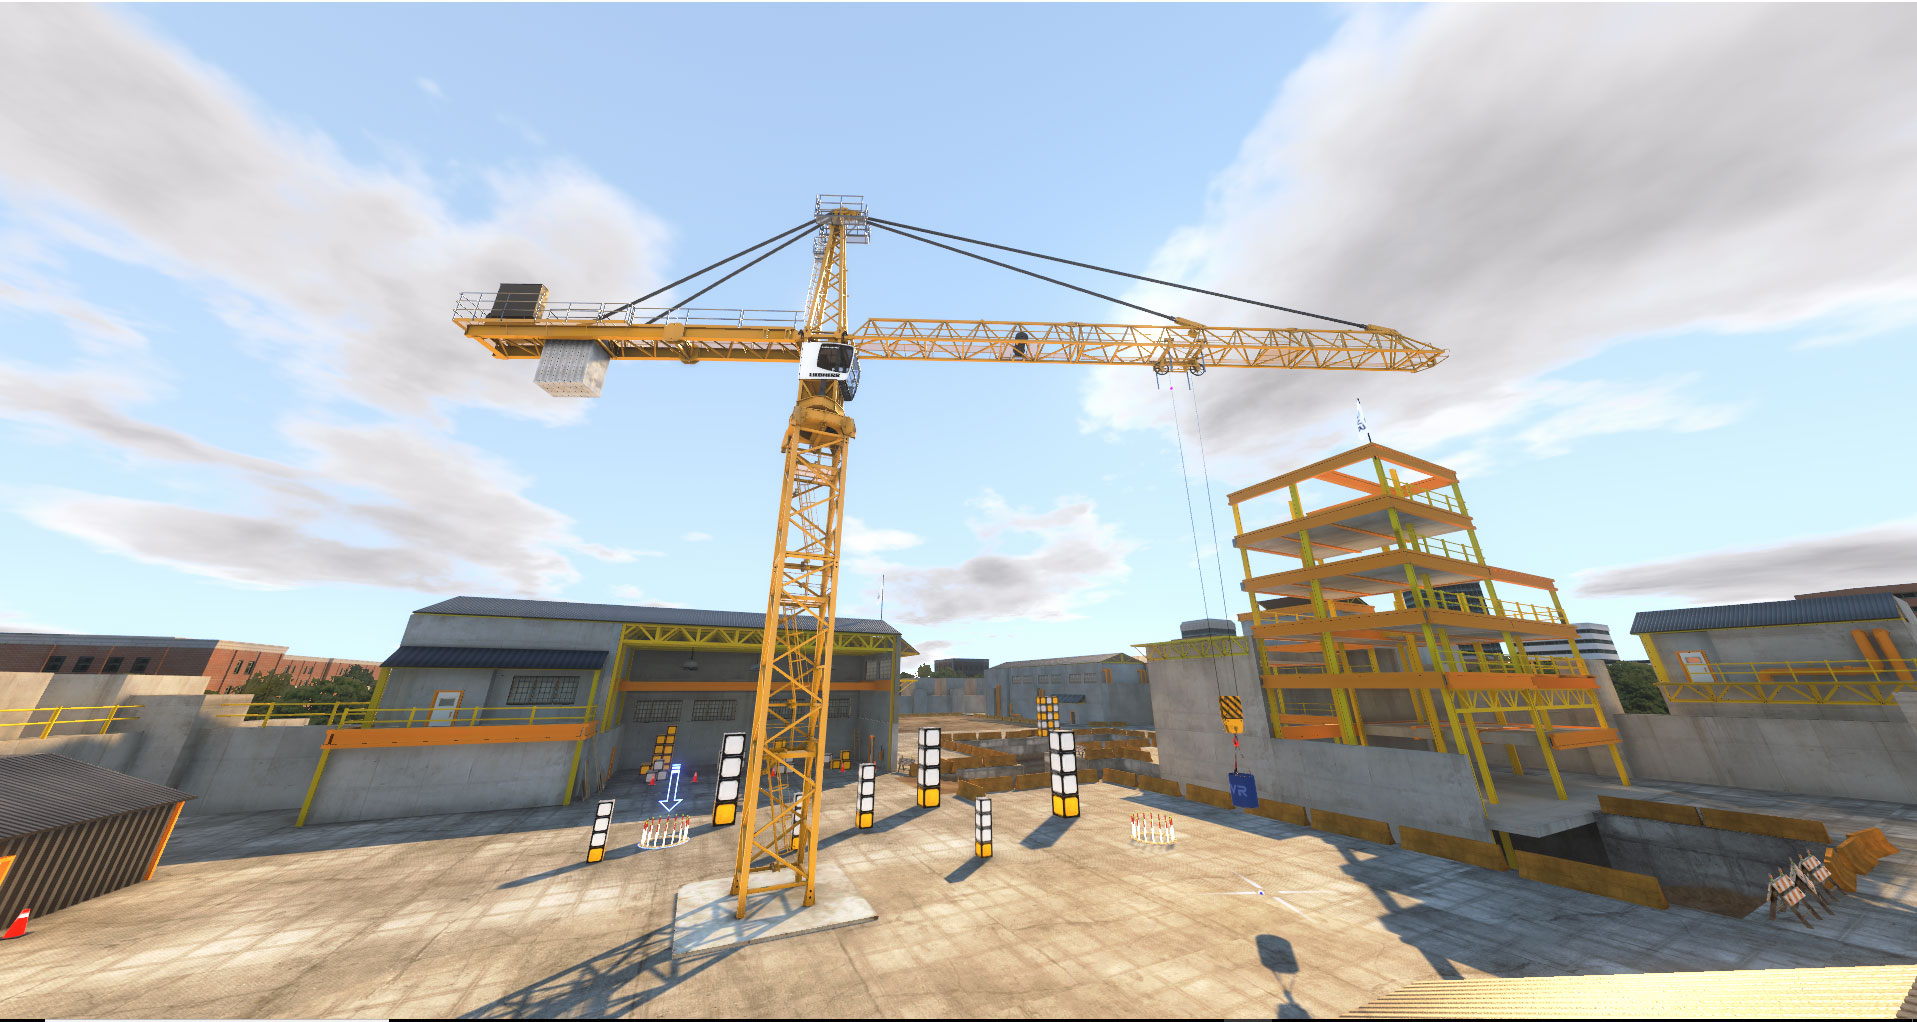 VR-Tower-Crane-Slide-1280px-01.jpg